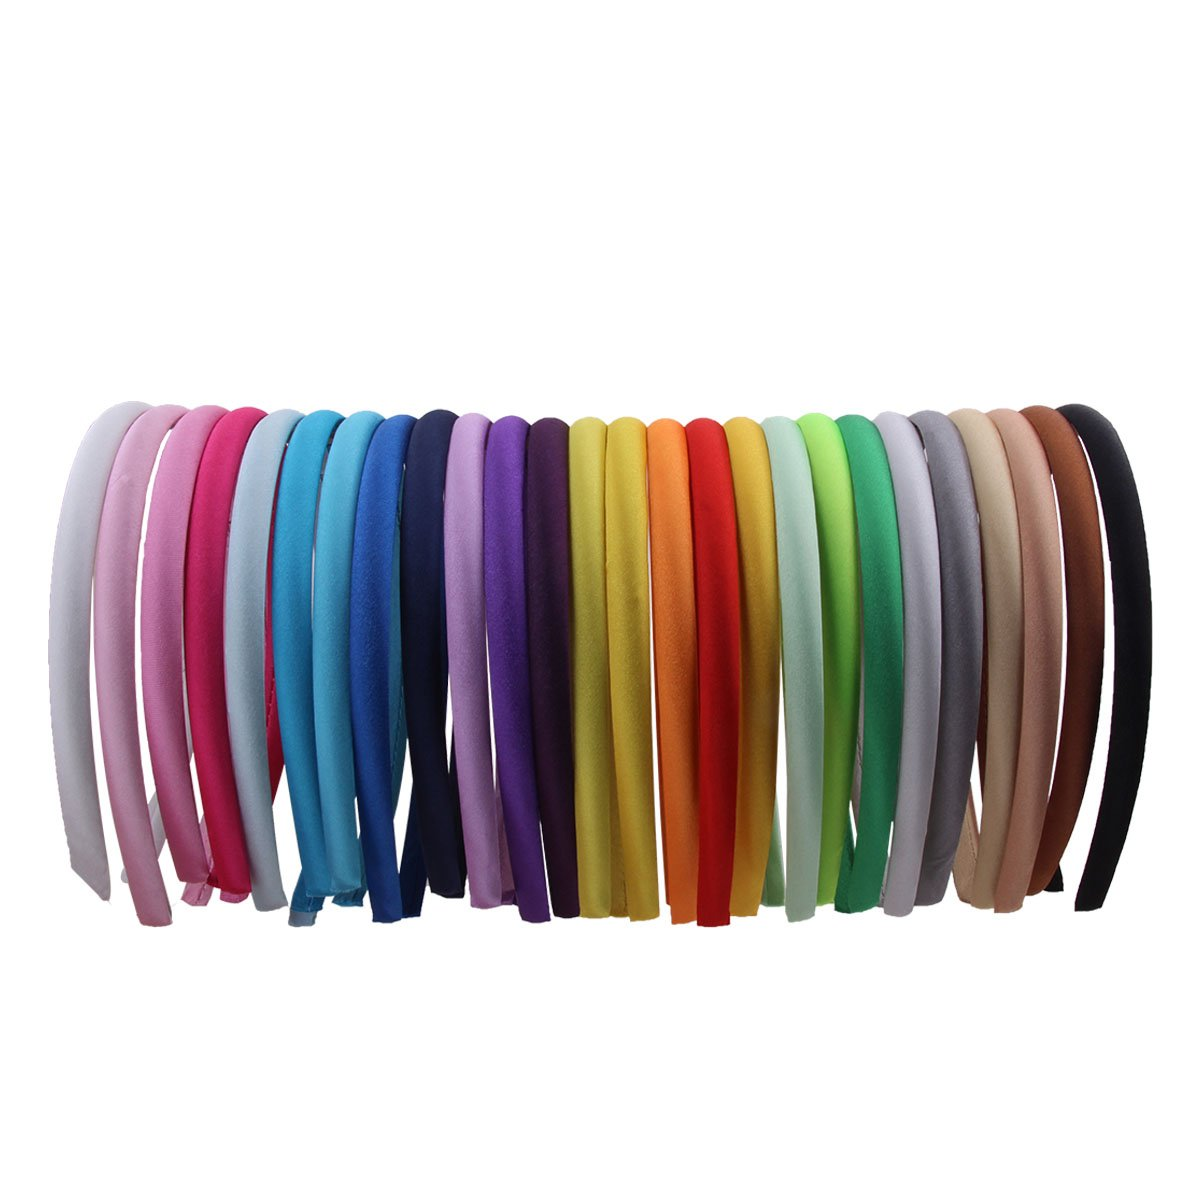 Candygirl Girls' DIY Satin Covered Headbands 1cm Width 36cm Circle Size(26pcs Per Pack Each Color 1pcs) by Candygirl